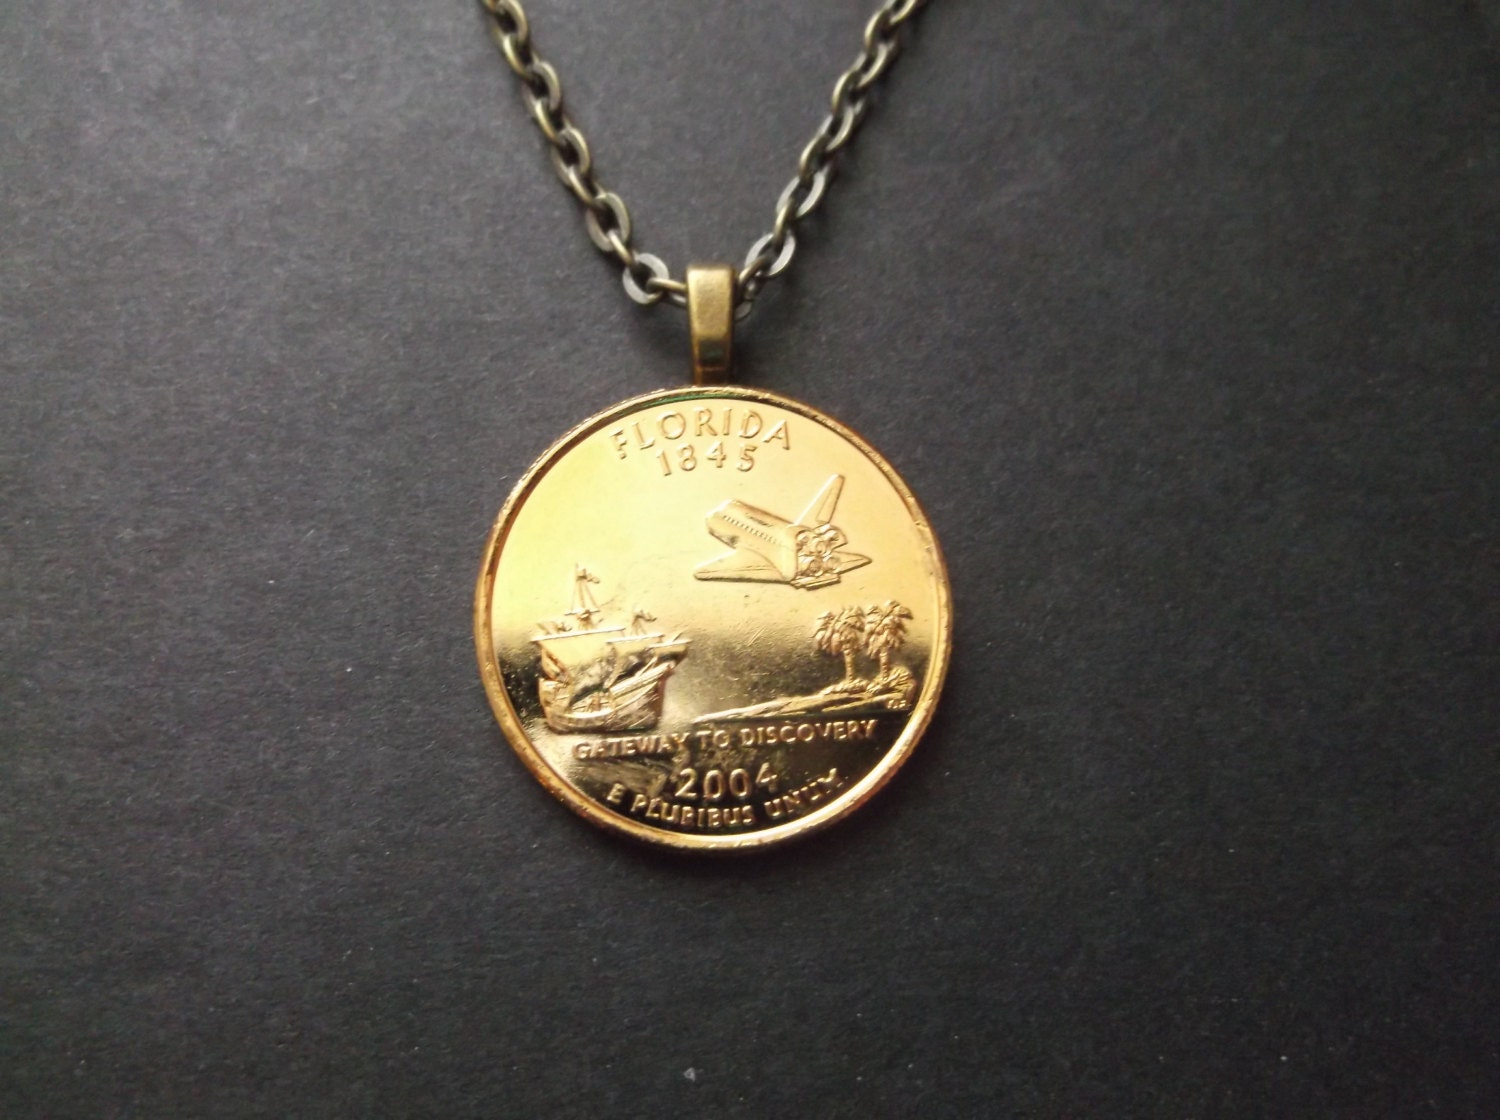 Florida United States Gold Colored Quarter Coin Necklace